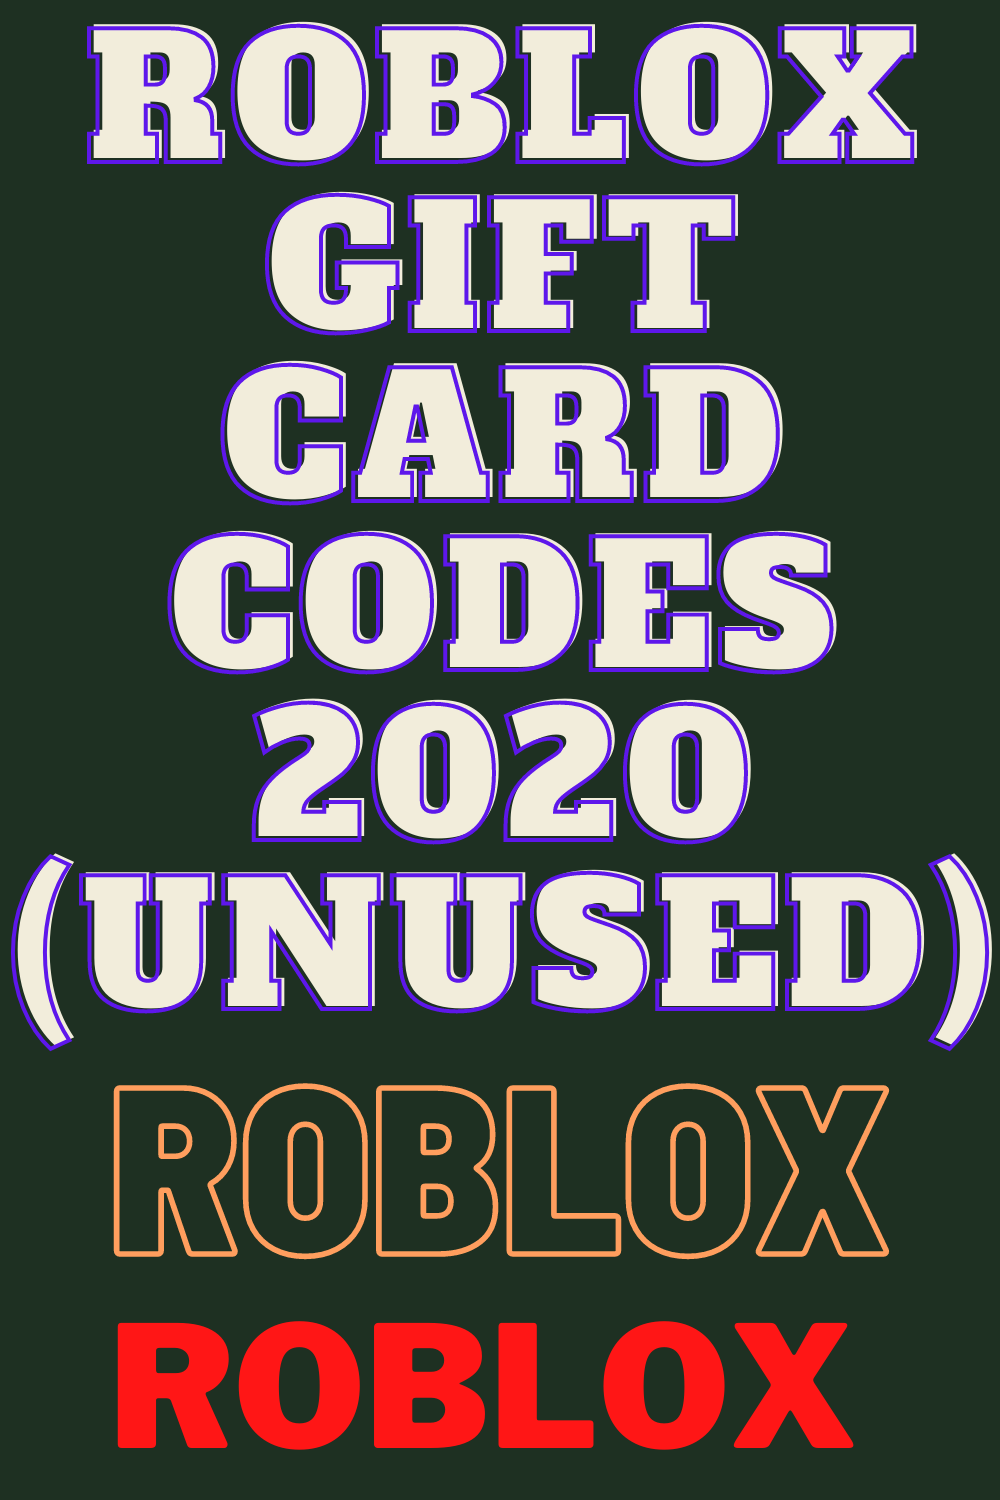 Roblox Gift Card Codes 2020 Unused Roblox Gifts Netflix Gift Card Codes Free Gift Cards Online